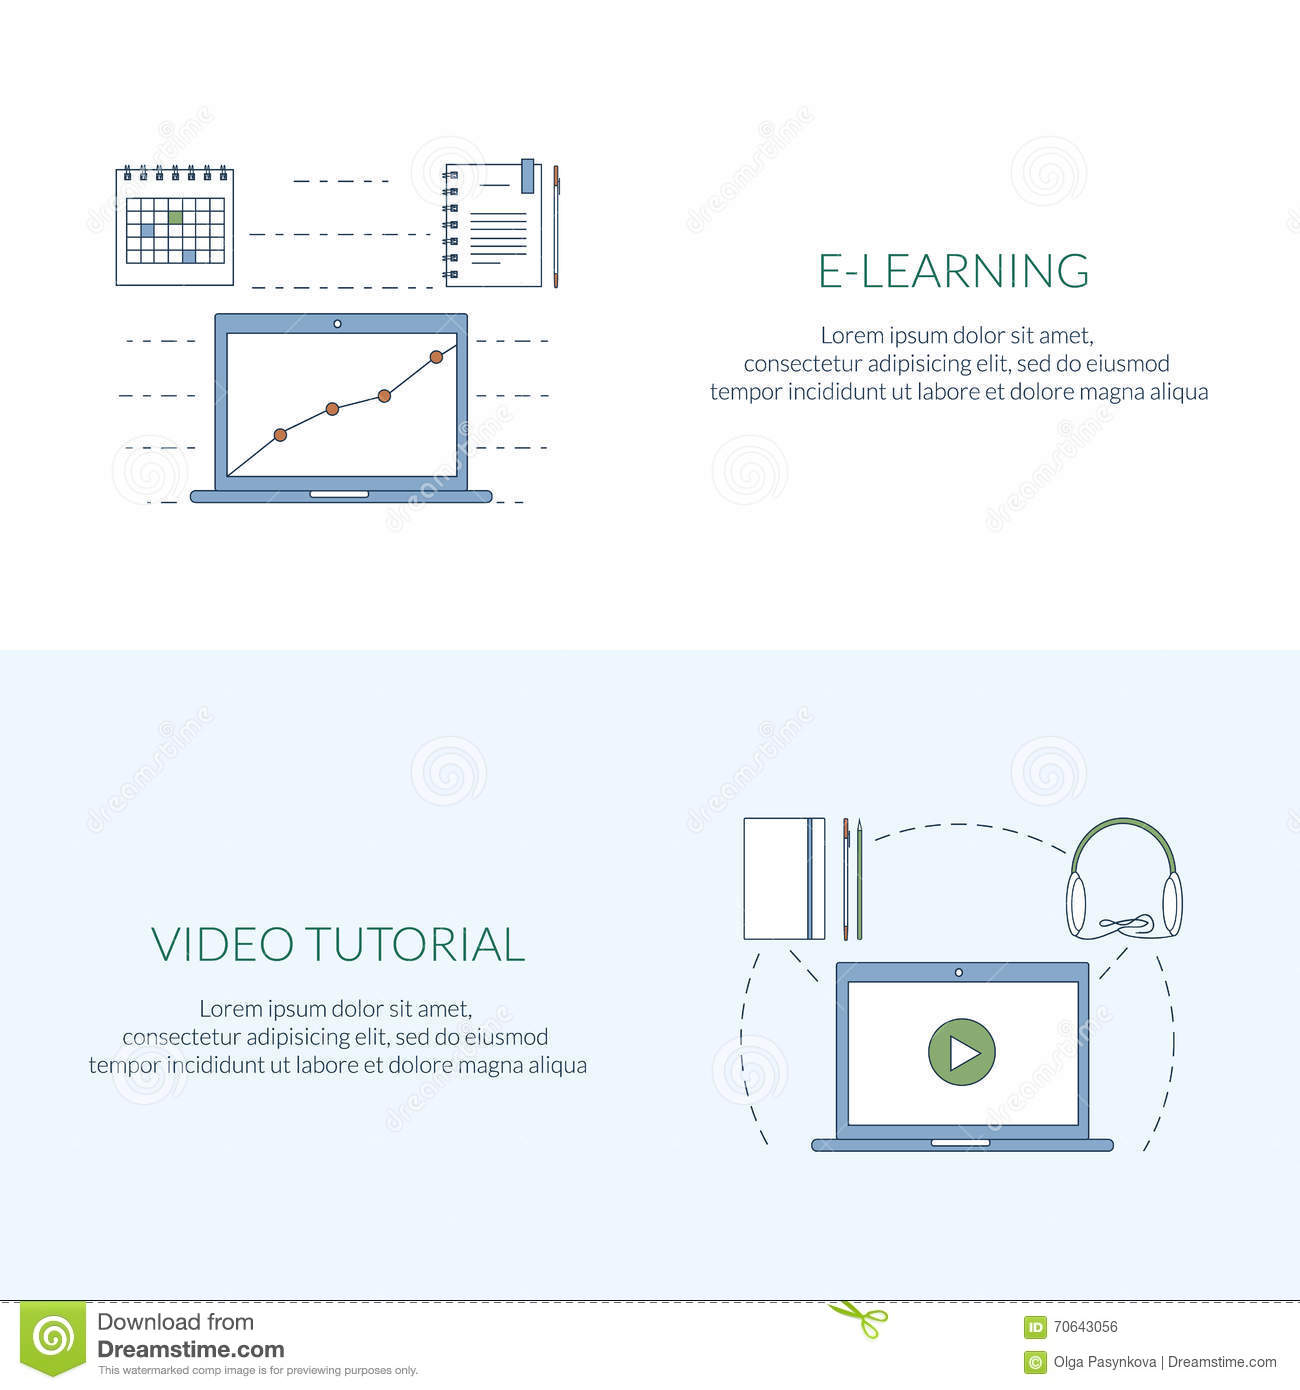 tuition tutorial Tuition express is the most efficient and safest way child care payments can be made whether by electronic fund transfer, online, card swipe or completely automated, payments are convenient for parents, and on-time and integrated for providers.